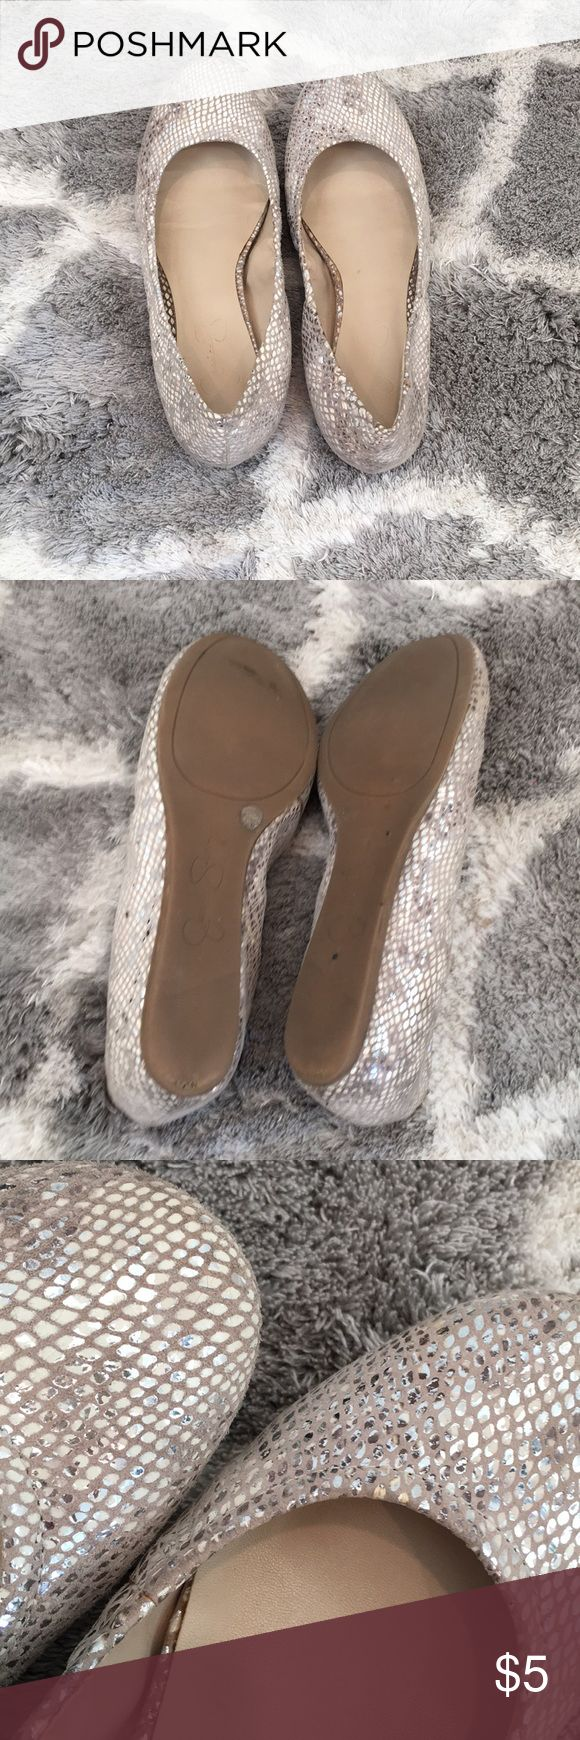 Jessica Simpson Flats Just the right amount of bling! Jessica Simpson Shoes Flats & Loafers